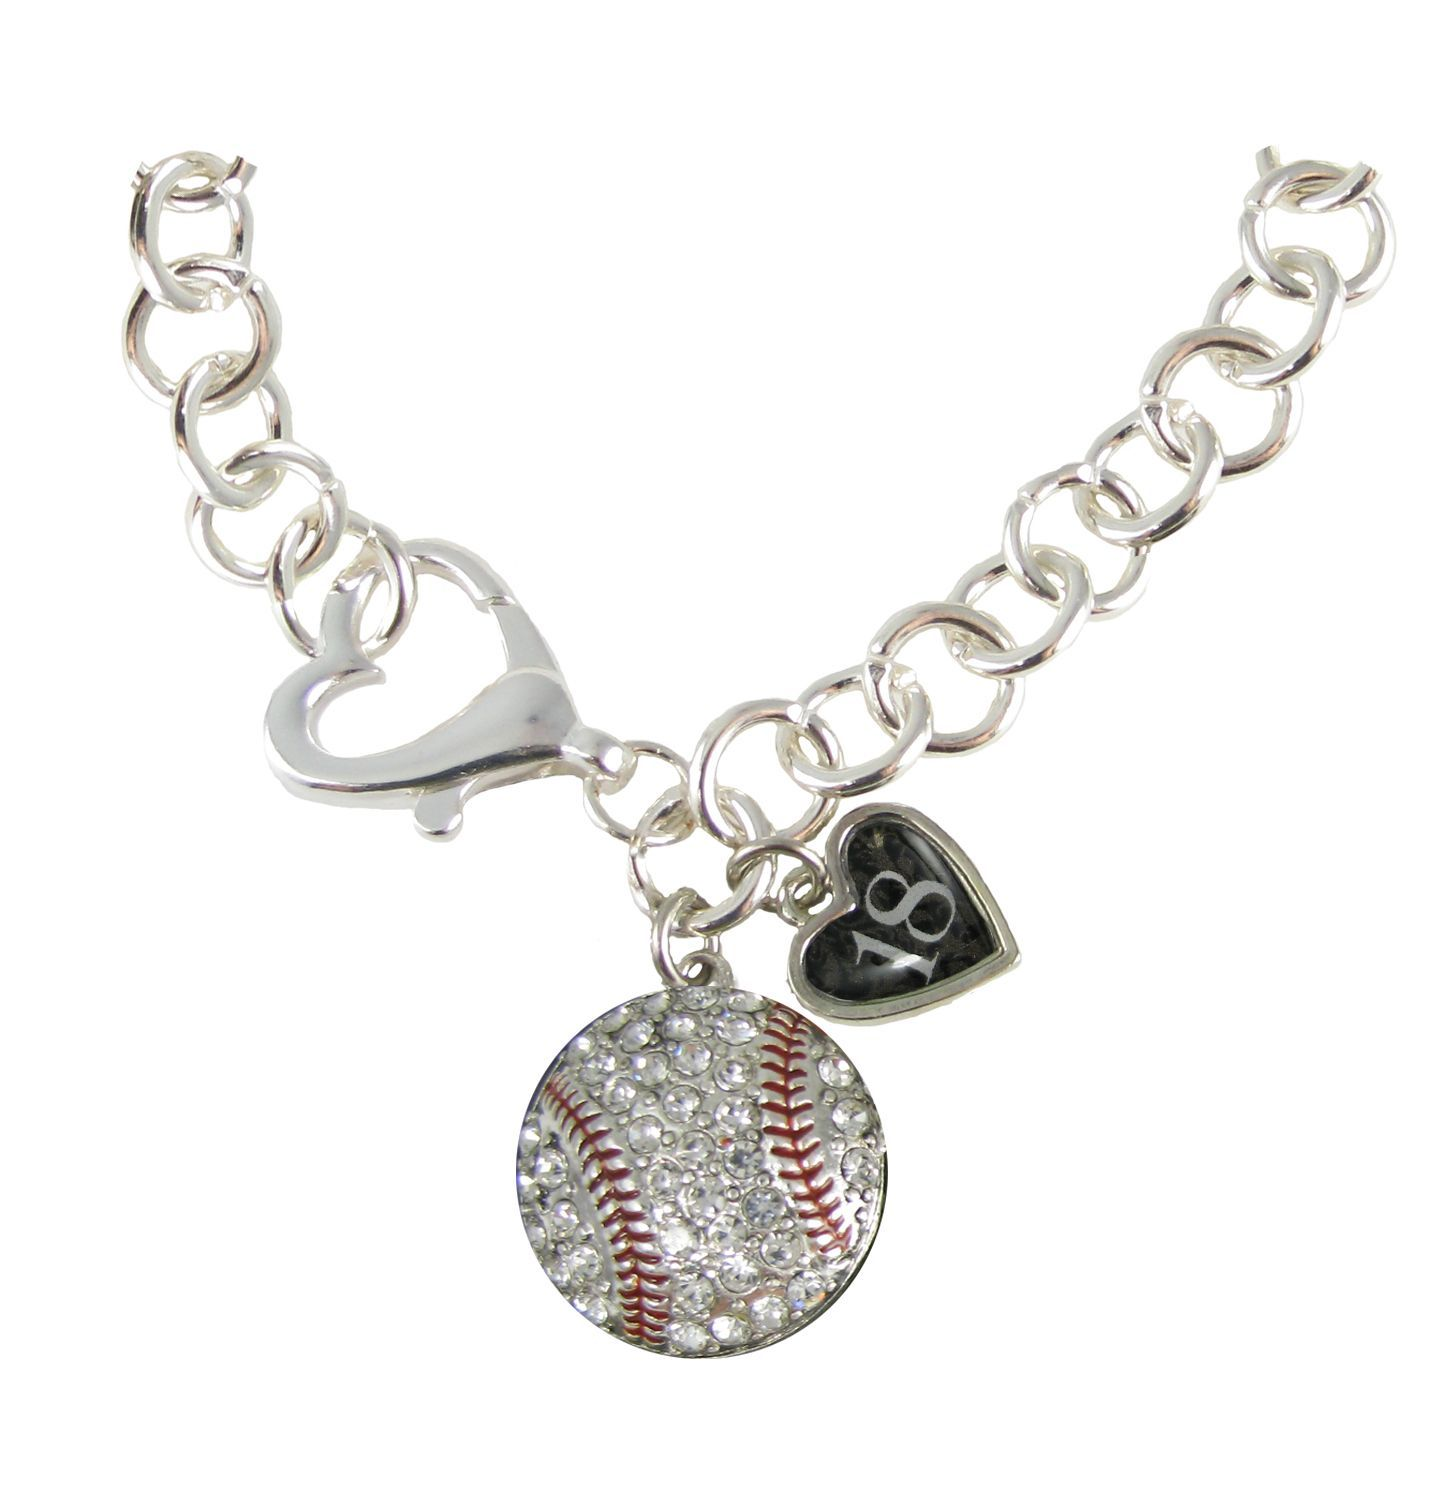 men for caymancode key necklaces ring silver baseball mens jewelry sterling chain necklace bling